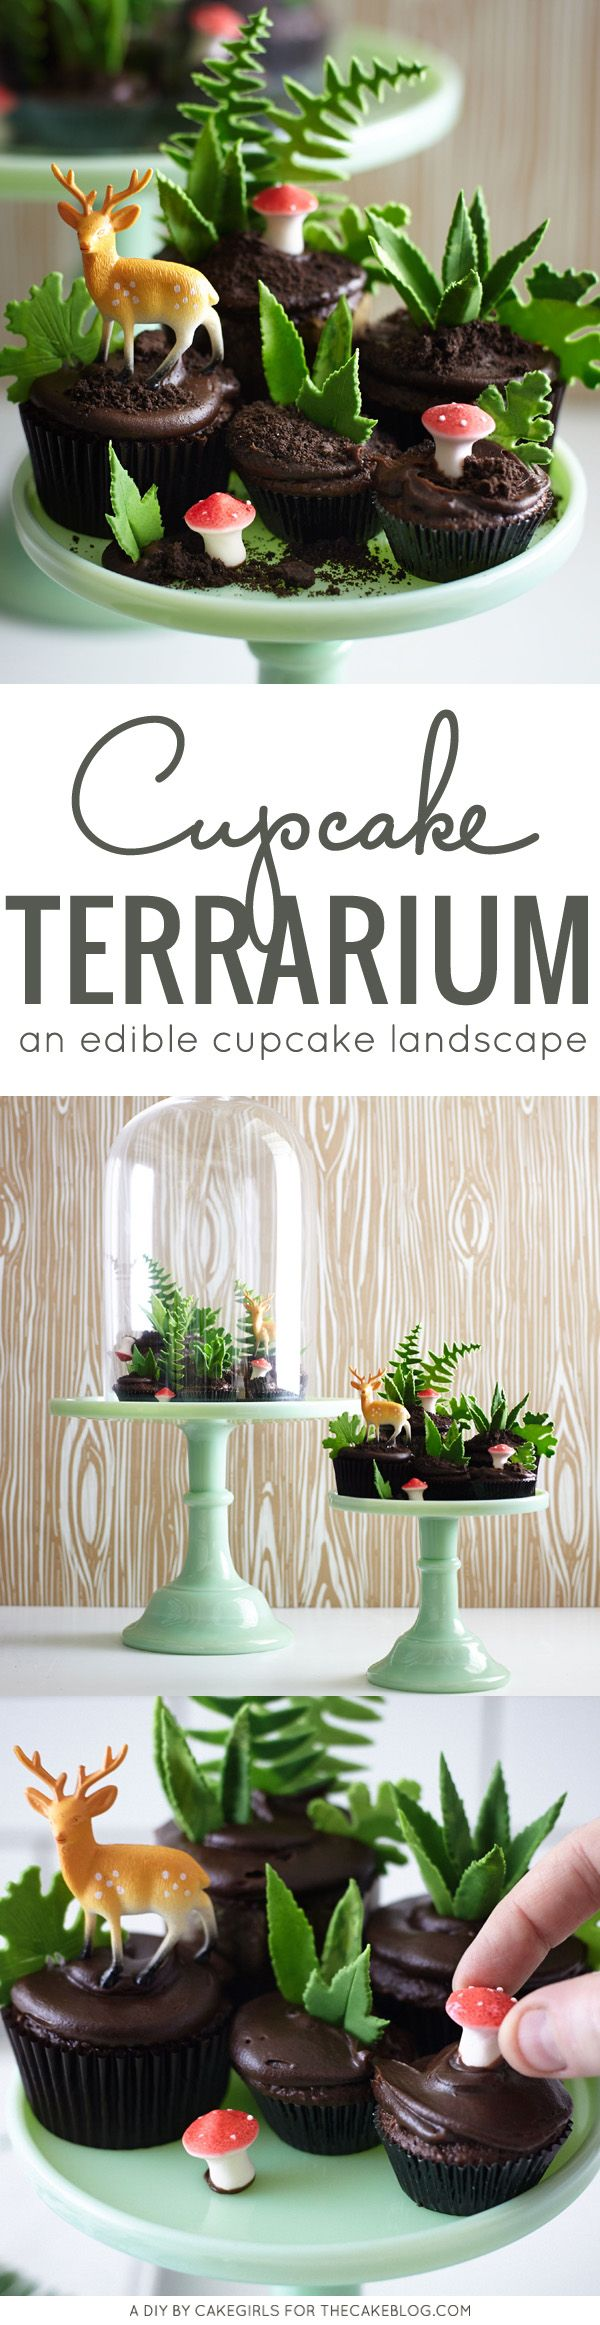 With a few smart shortcuts, this cupcake landscape looks impressive but is super easy to make!  |  DIY Cupcake Terrarium by Cakegirls for http://TheCakeBlog.com